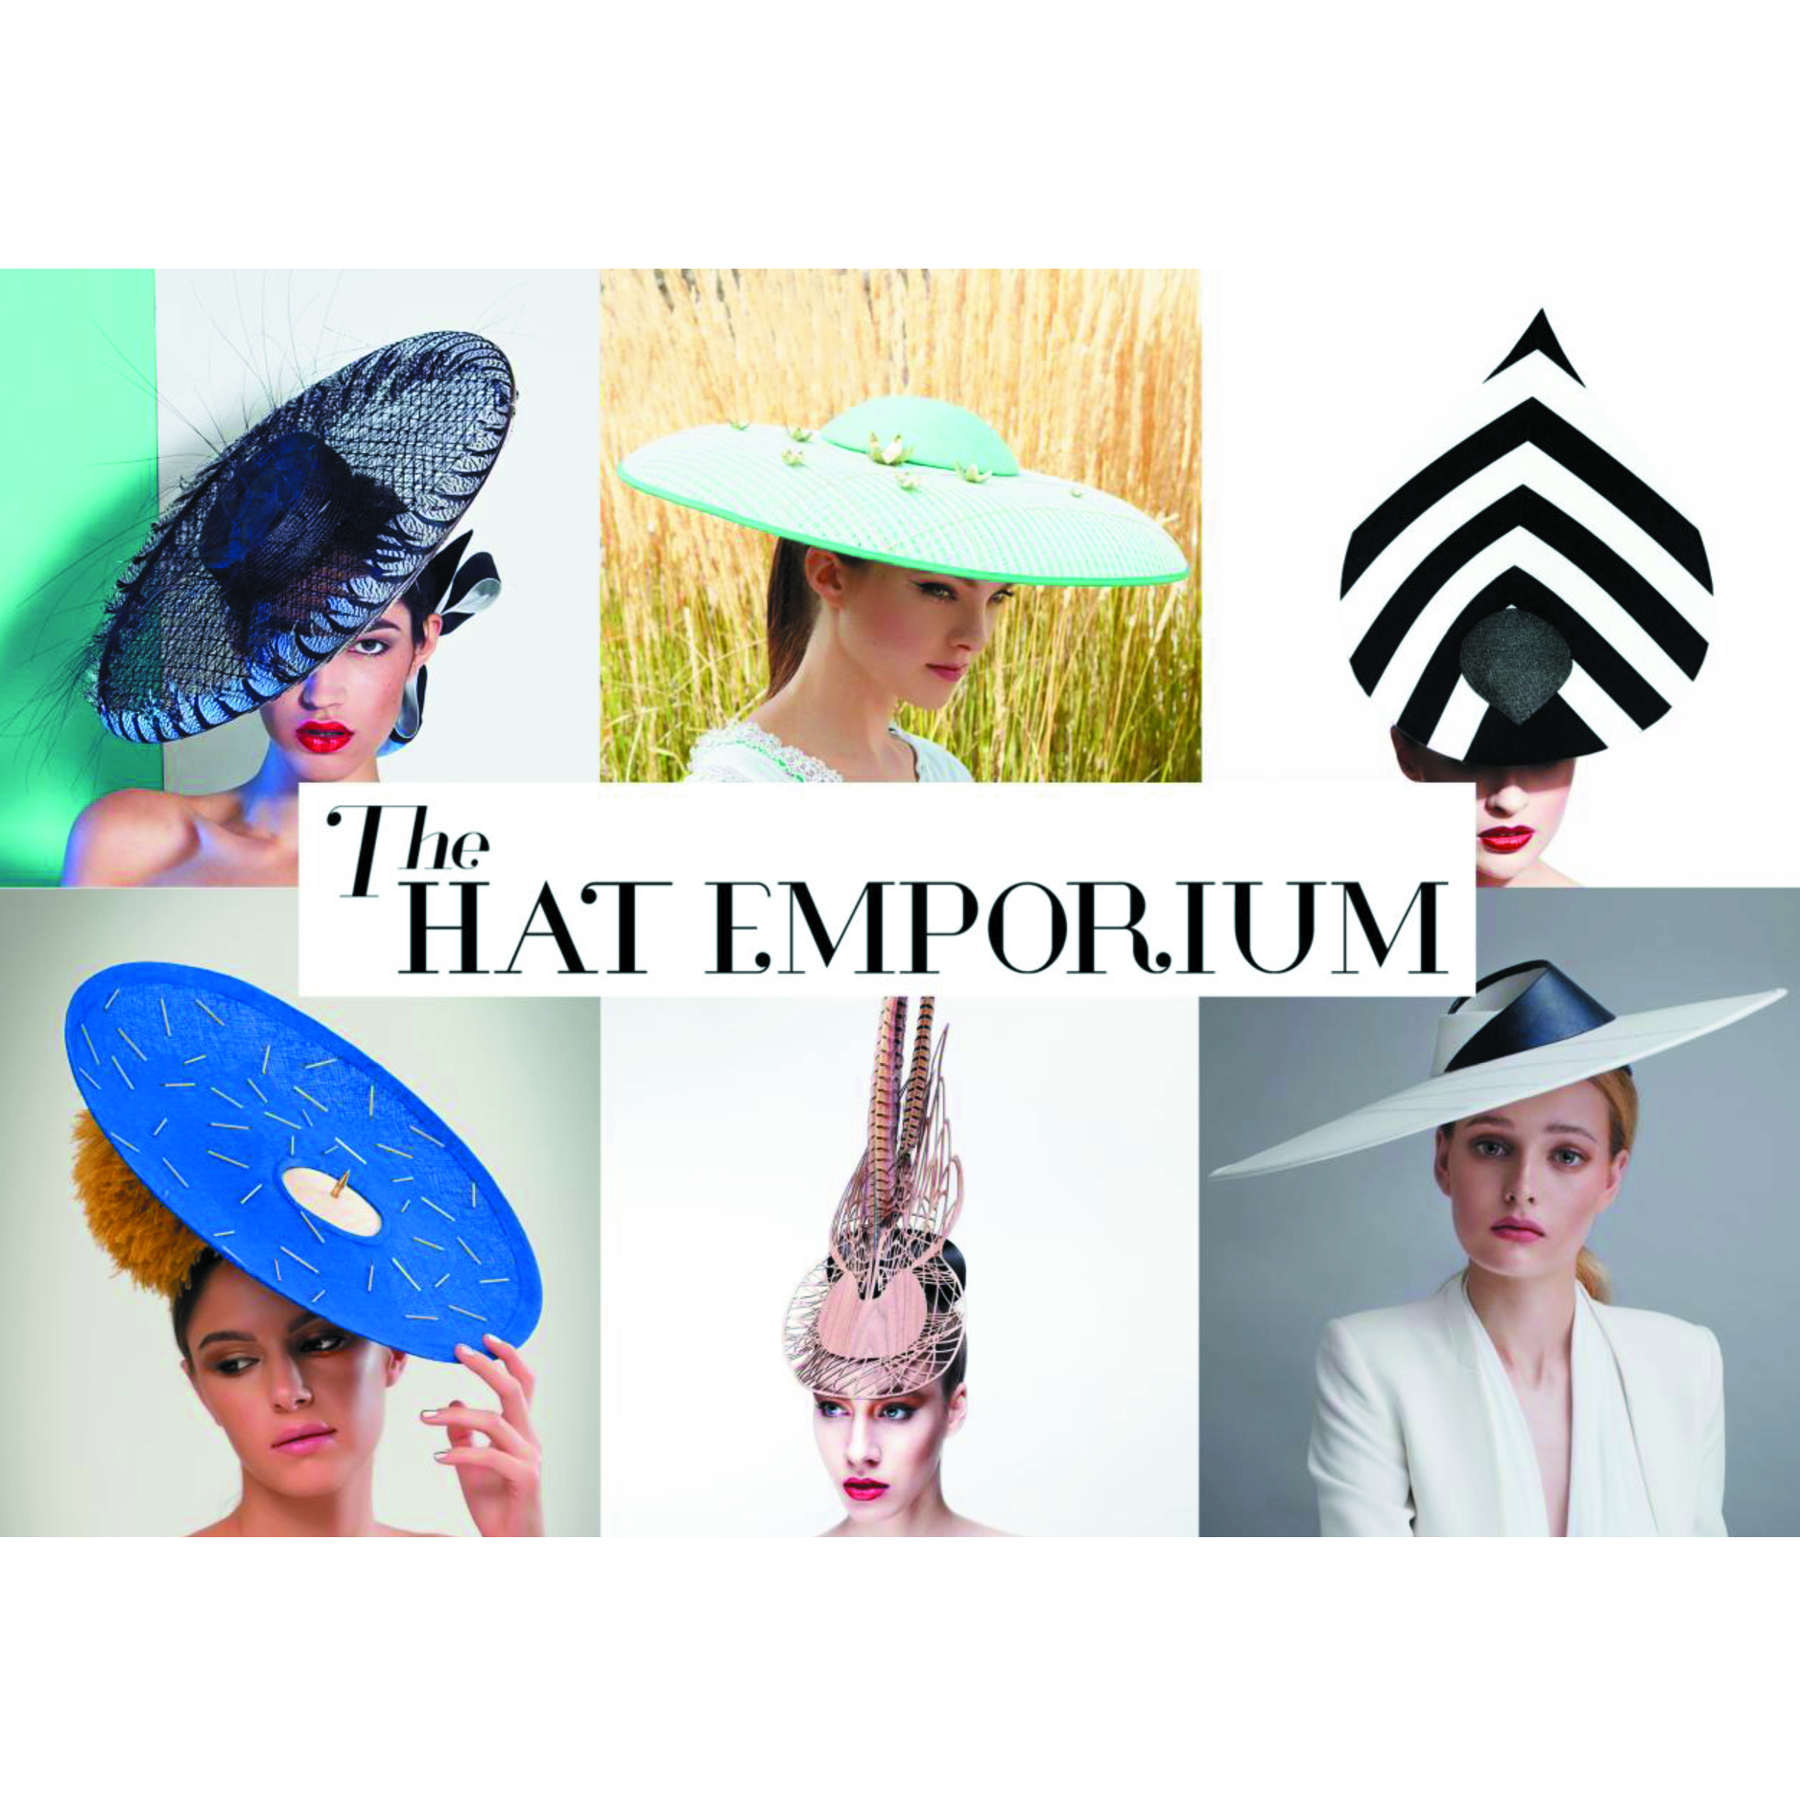 Milliners from The Hat Emporium, clockwise from top left: Lisa Tan, Lizzie McQuade, Martha Lynn, Sophie Beale, Emma Yeo and Awon Golding.